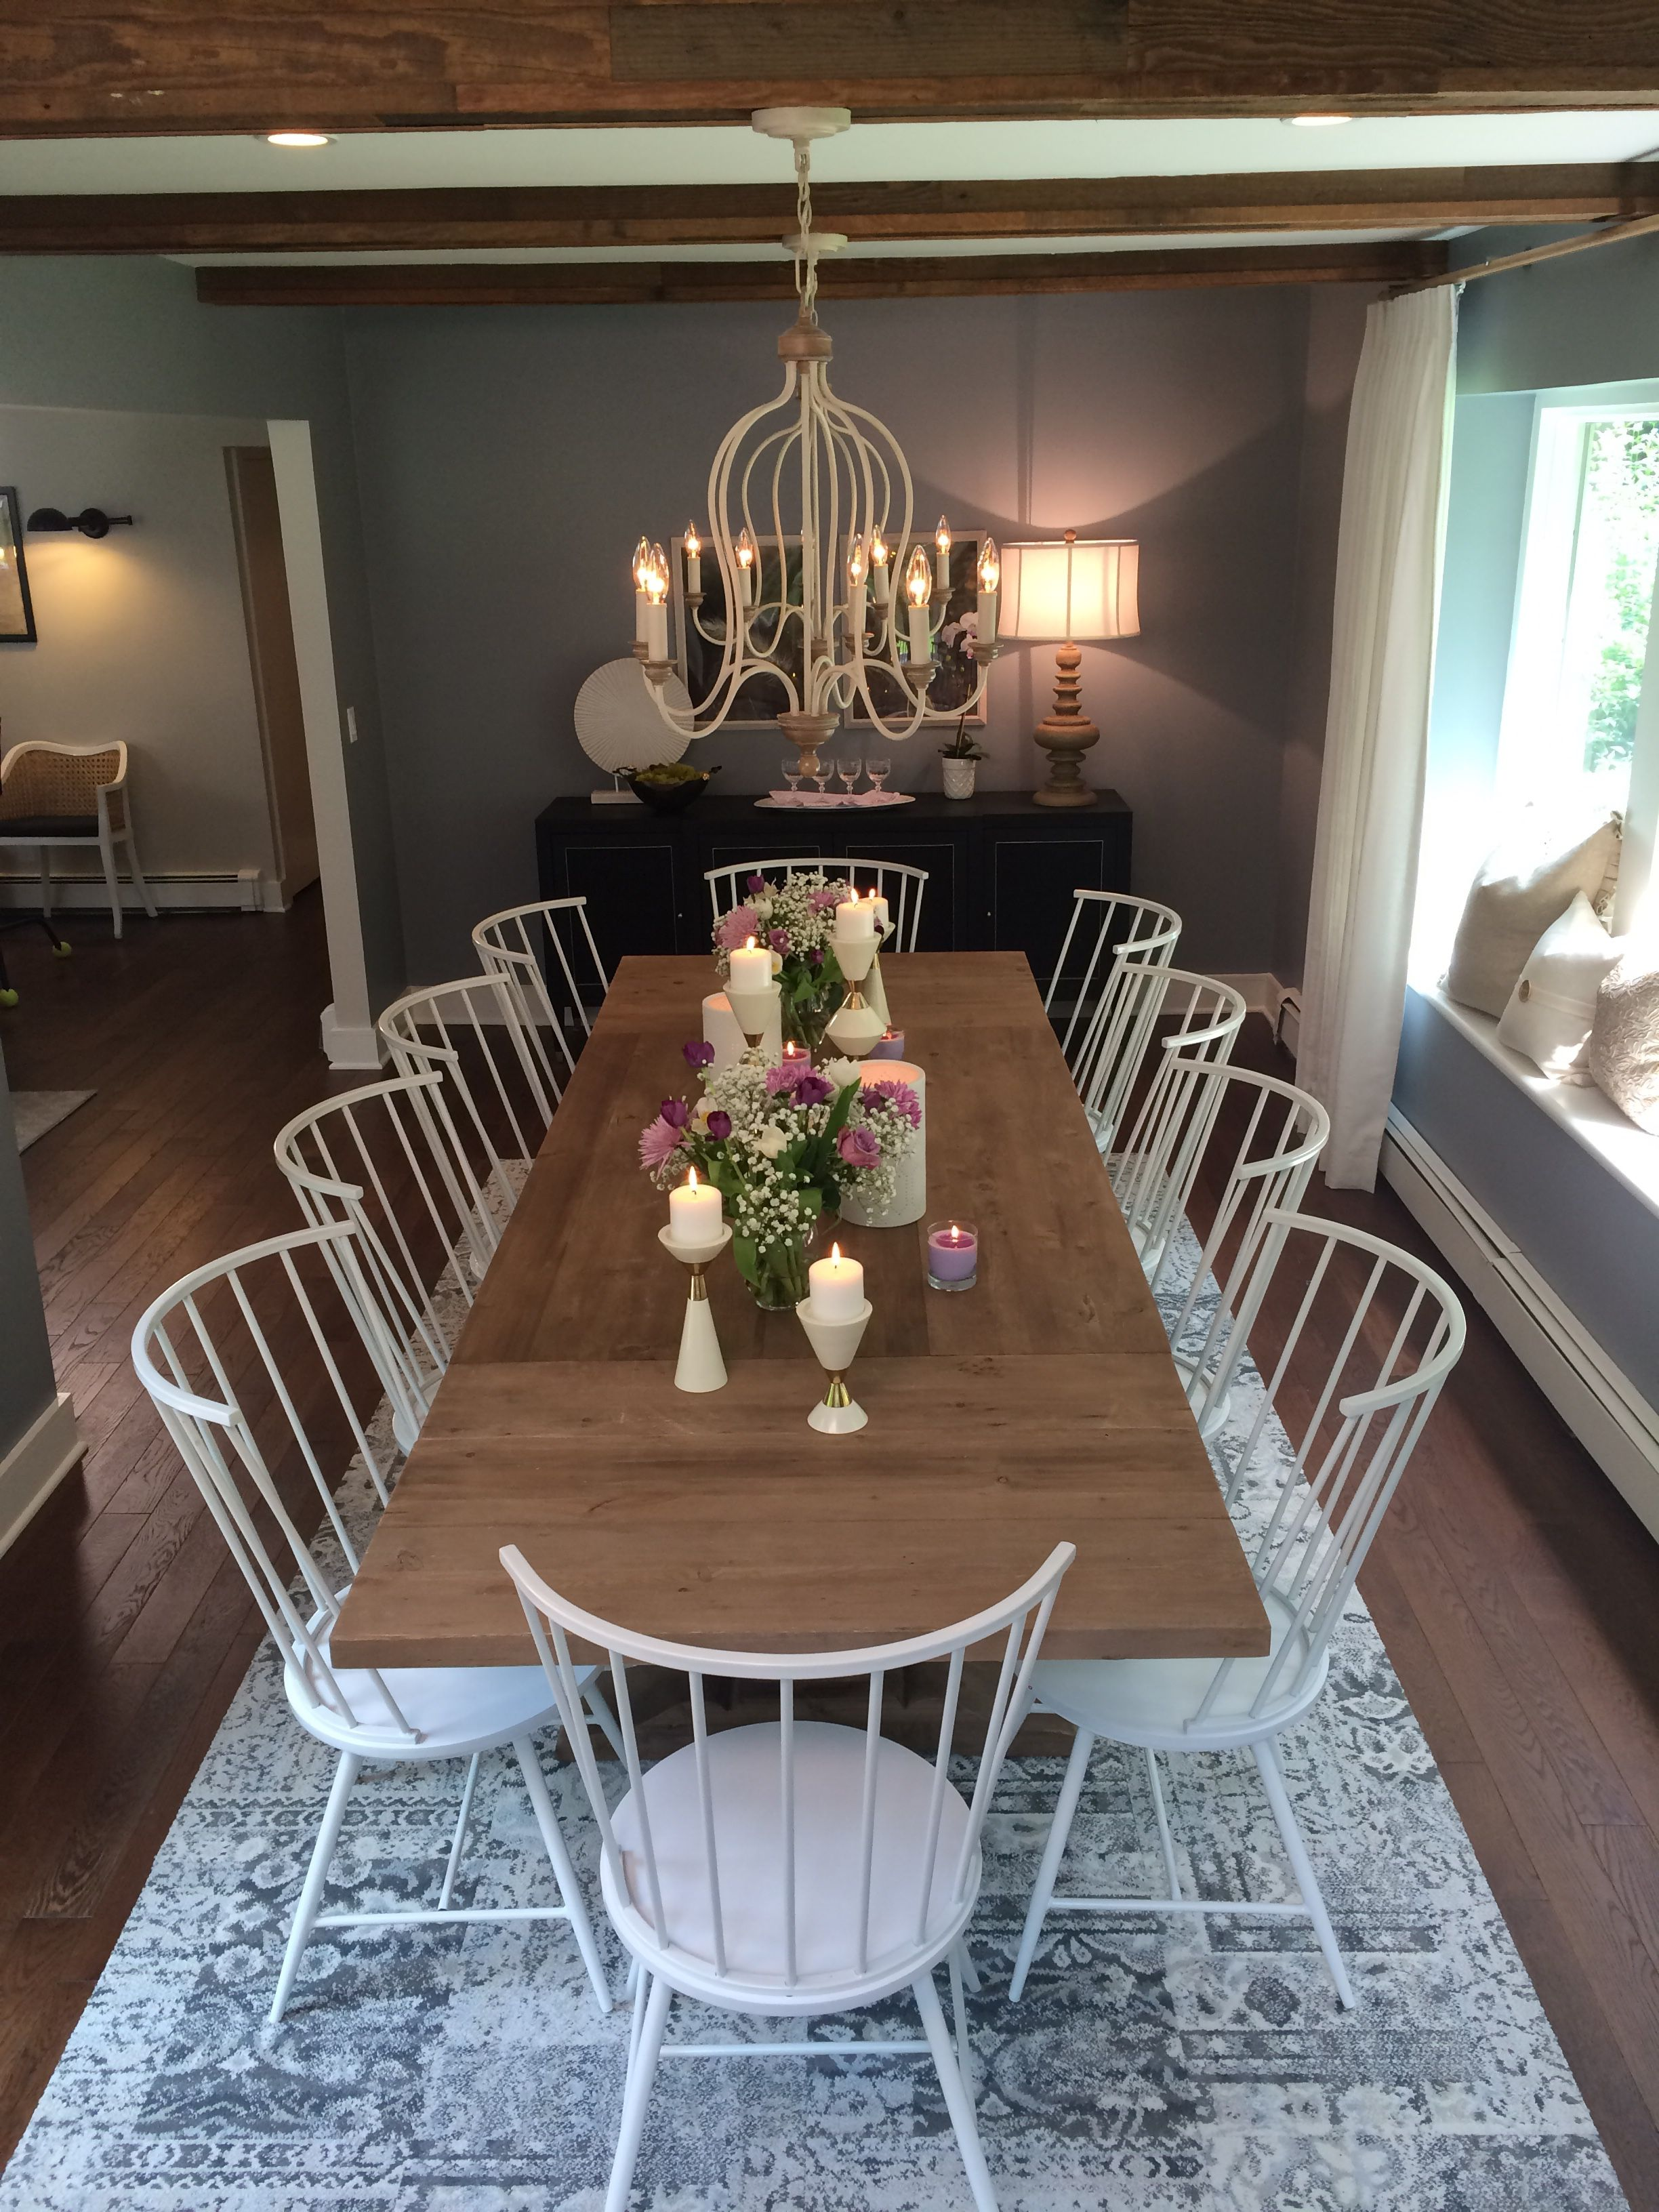 The Hartsville Chandeliers From Feiss As Seen In This Farmhouse Dining Room Designed By Property Brothers